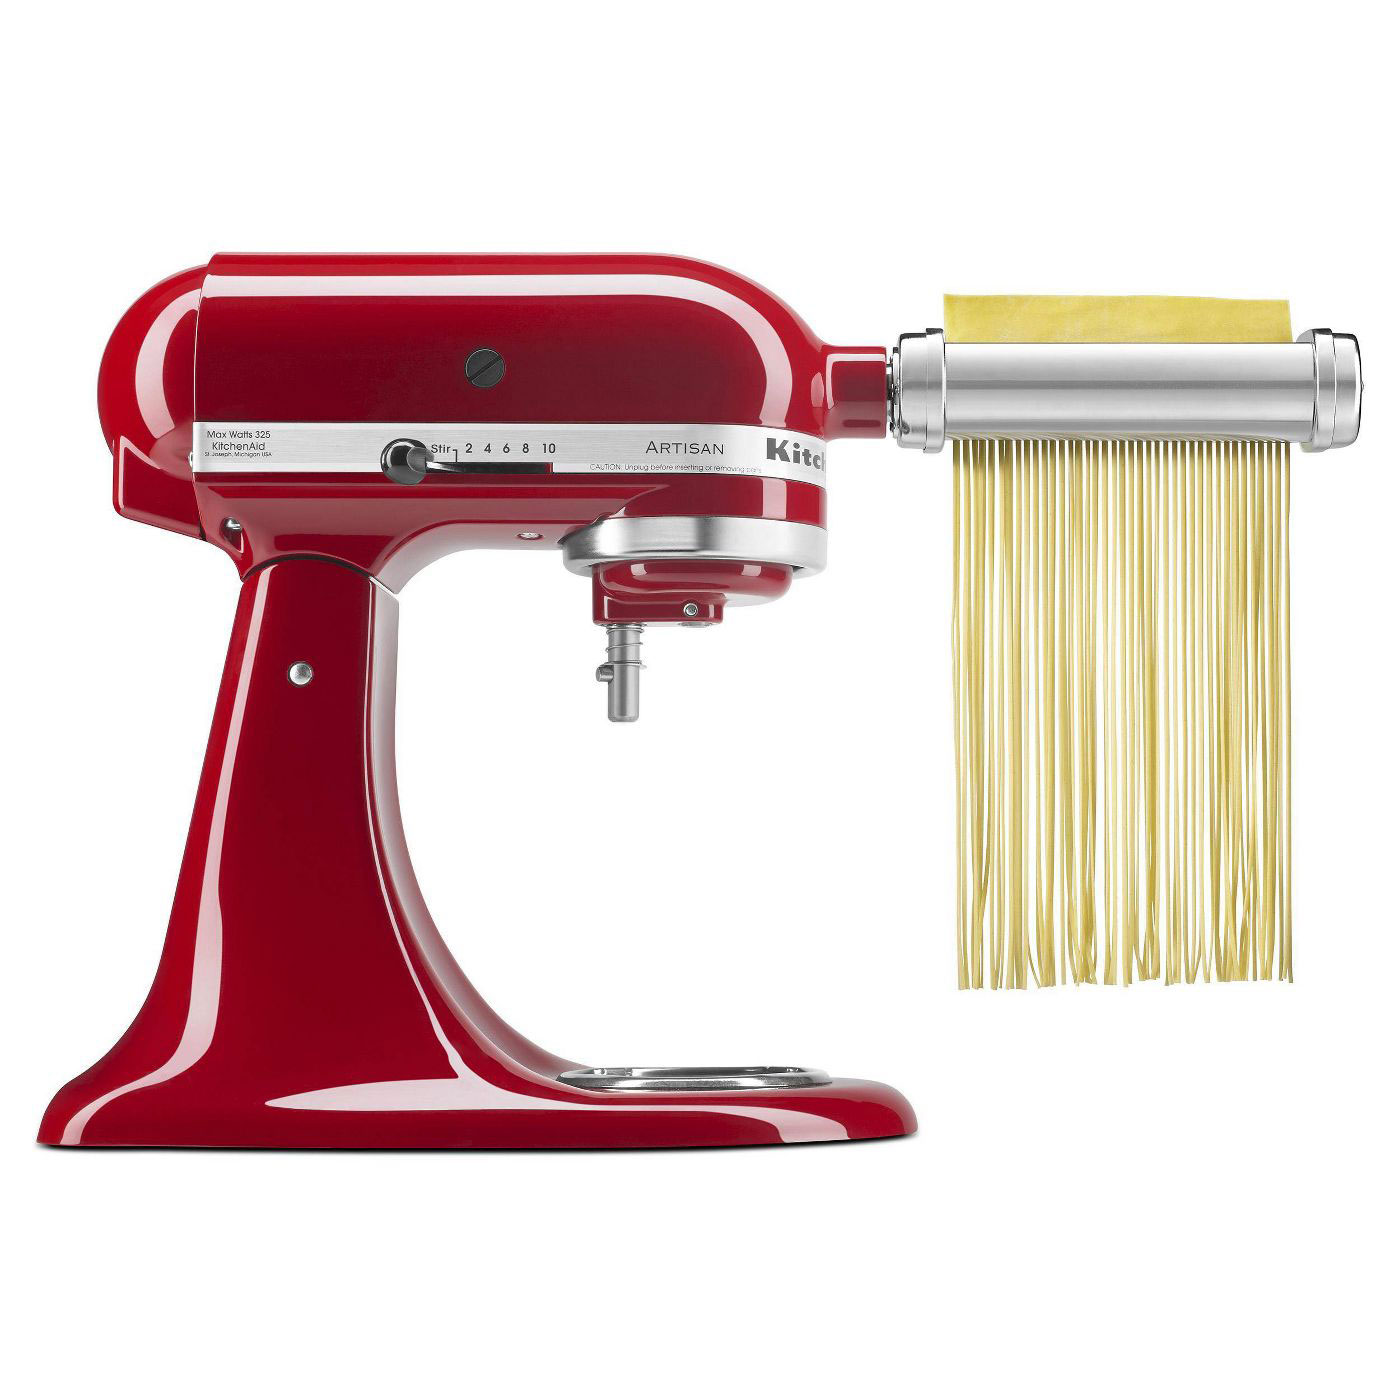 Best hostess gifts, ideas - KitchenAid Pasta Roller and Cutter Set